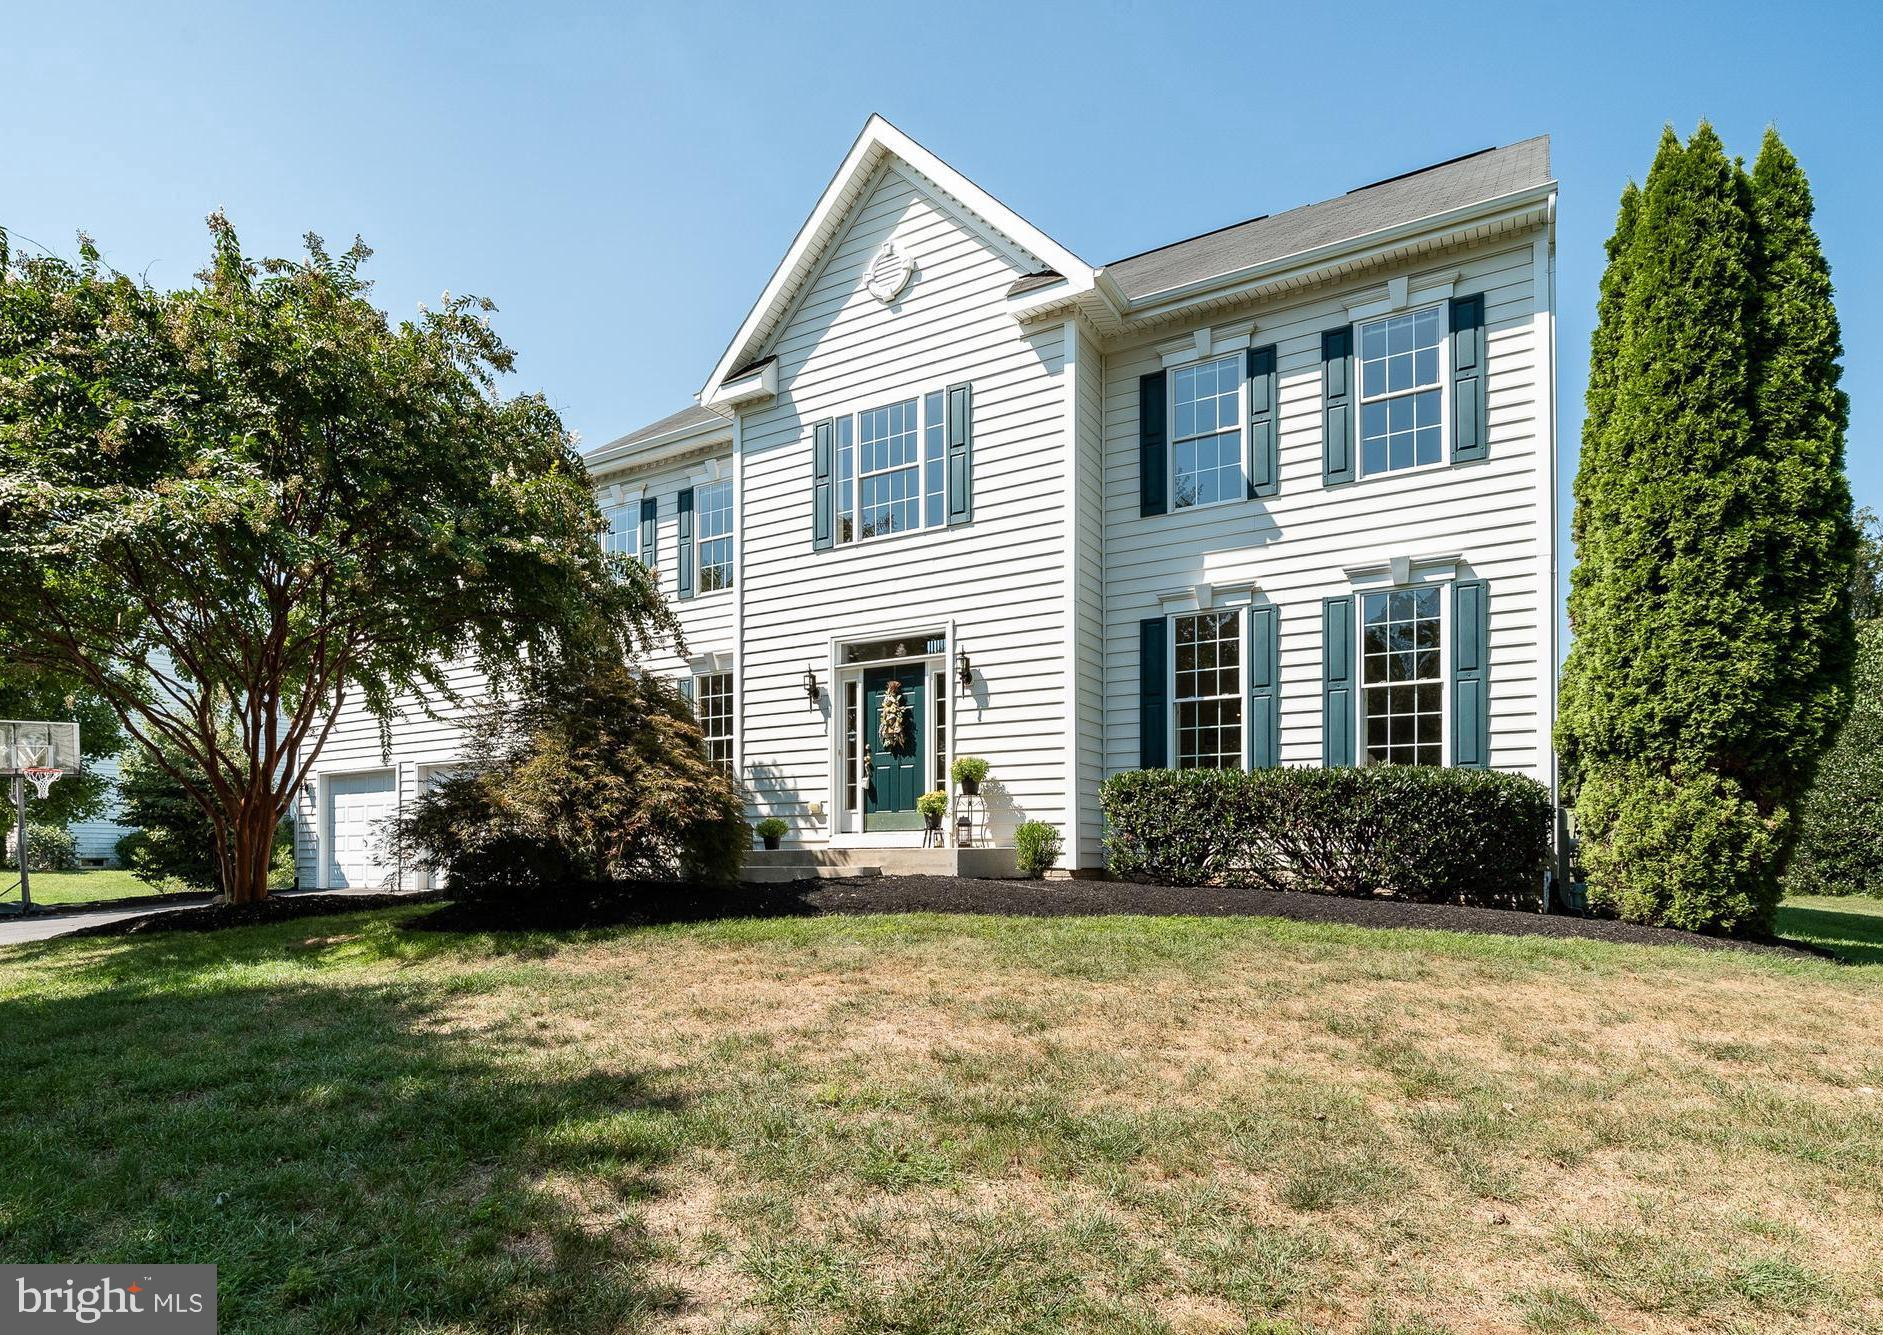 2129 GRANT FARM COURT, MARRIOTTSVILLE, MD 21104